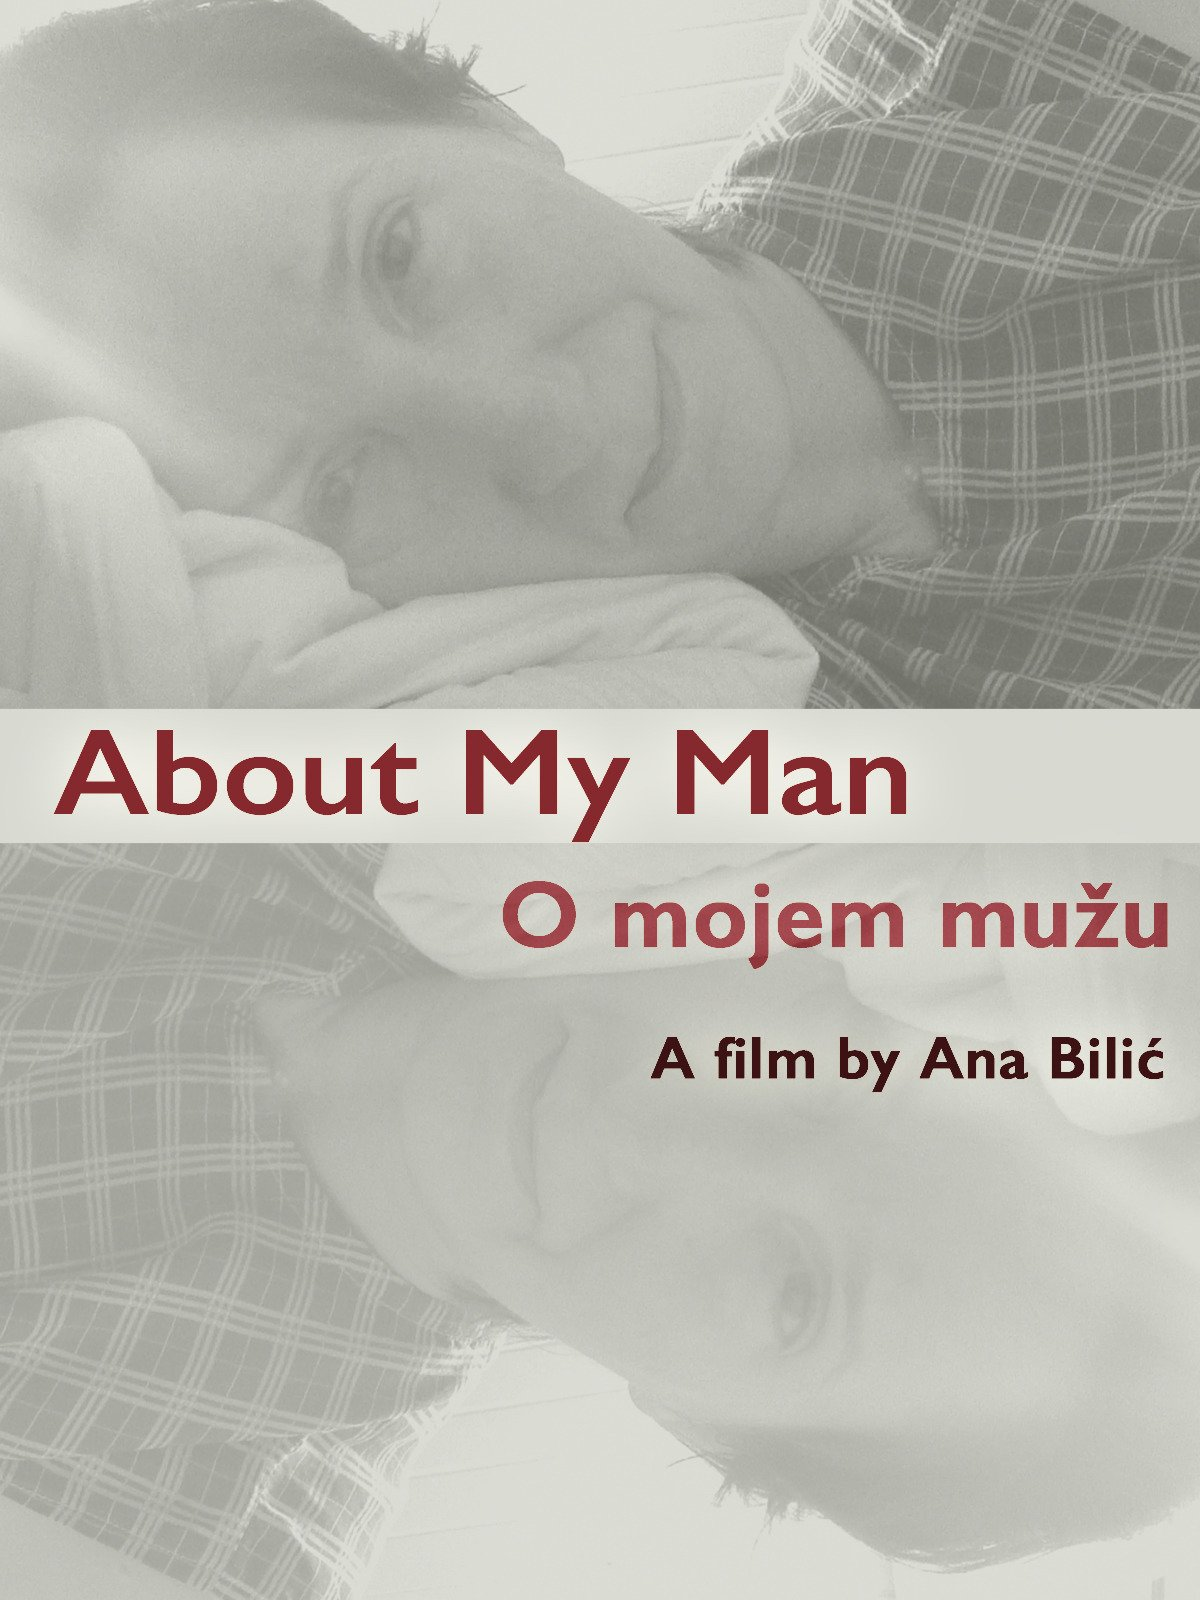 About My Man